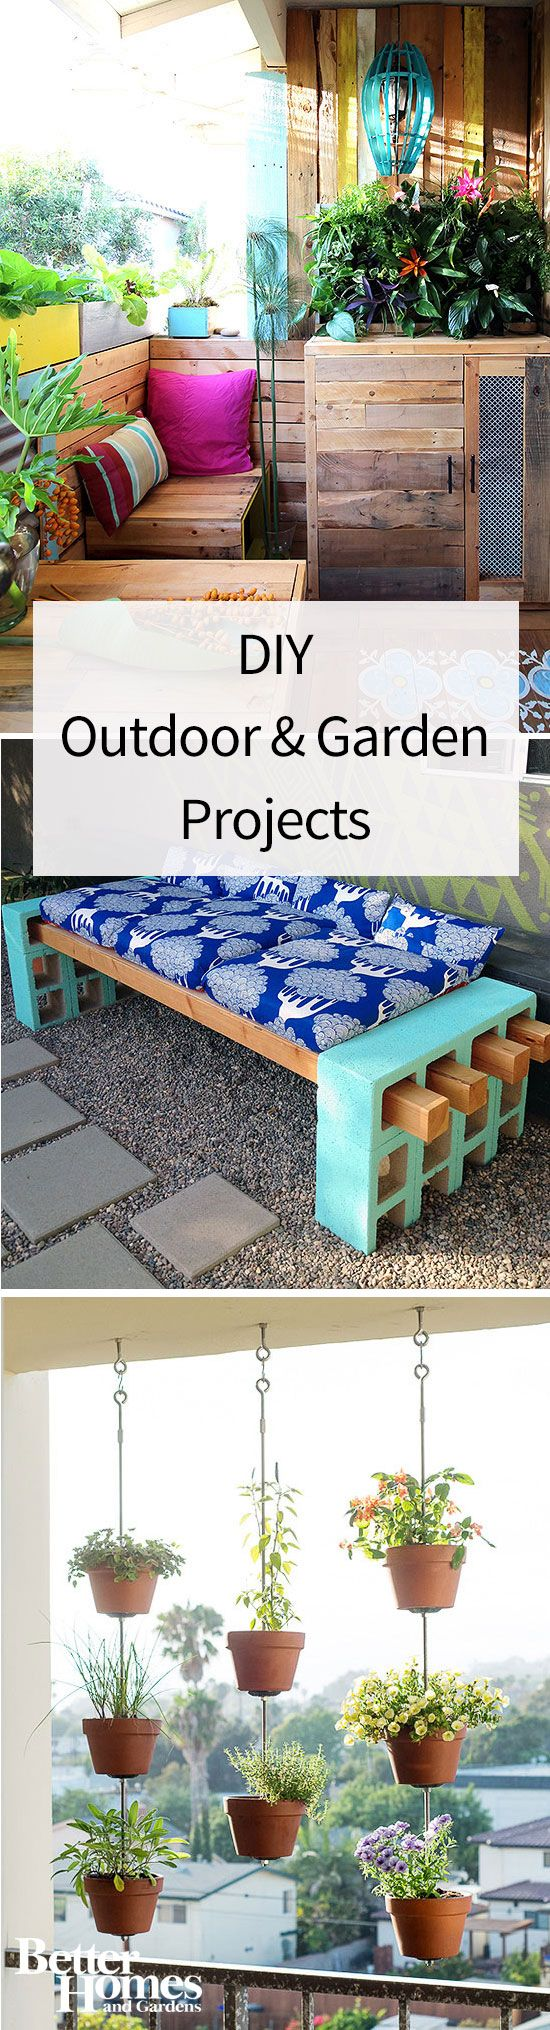 These DIY projects are perfect for the renter or apartment-dweller with a small deck, yard or patio. Add plenty of style and charm by repurposing thrift finds or salvaging pallets to make fun outdoor furniture. These outdoor DIY projects can be completed in a weekend or less.